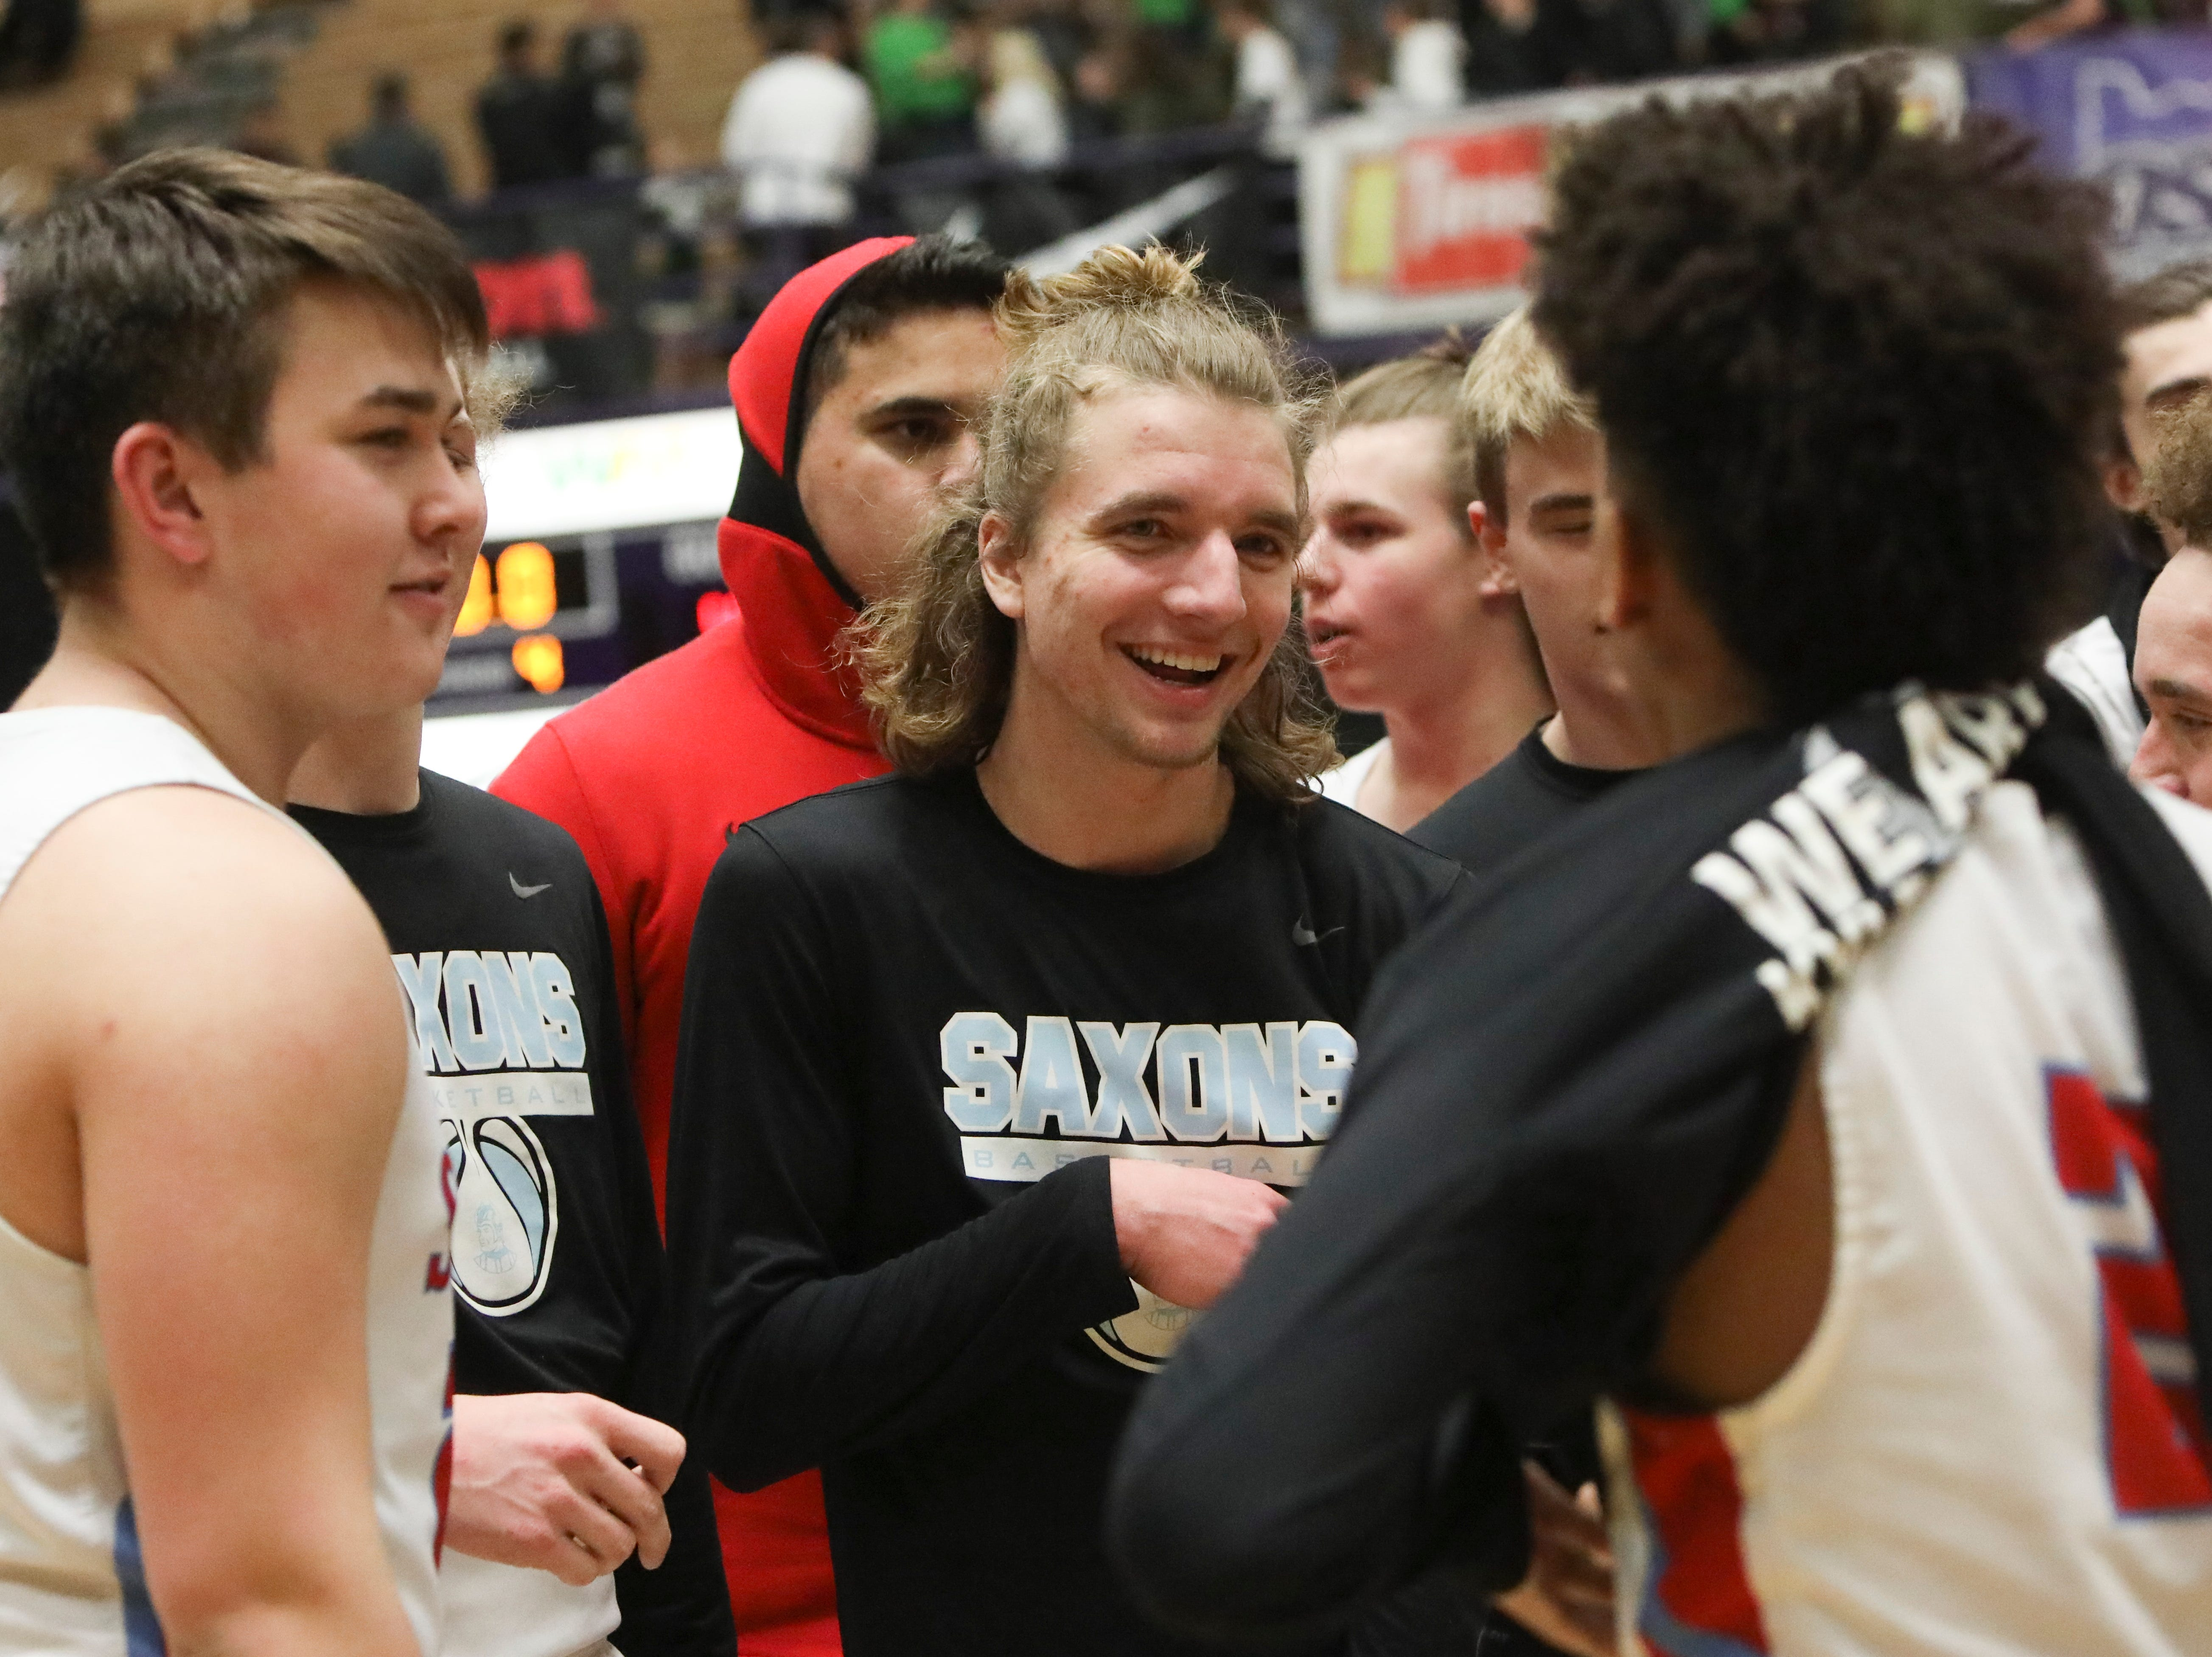 South Salem players celebreate their win over Tigard following the OSAA 6A boys basketball state tournament quarterfinal on Wednesday, March 6 at Chiles Center.